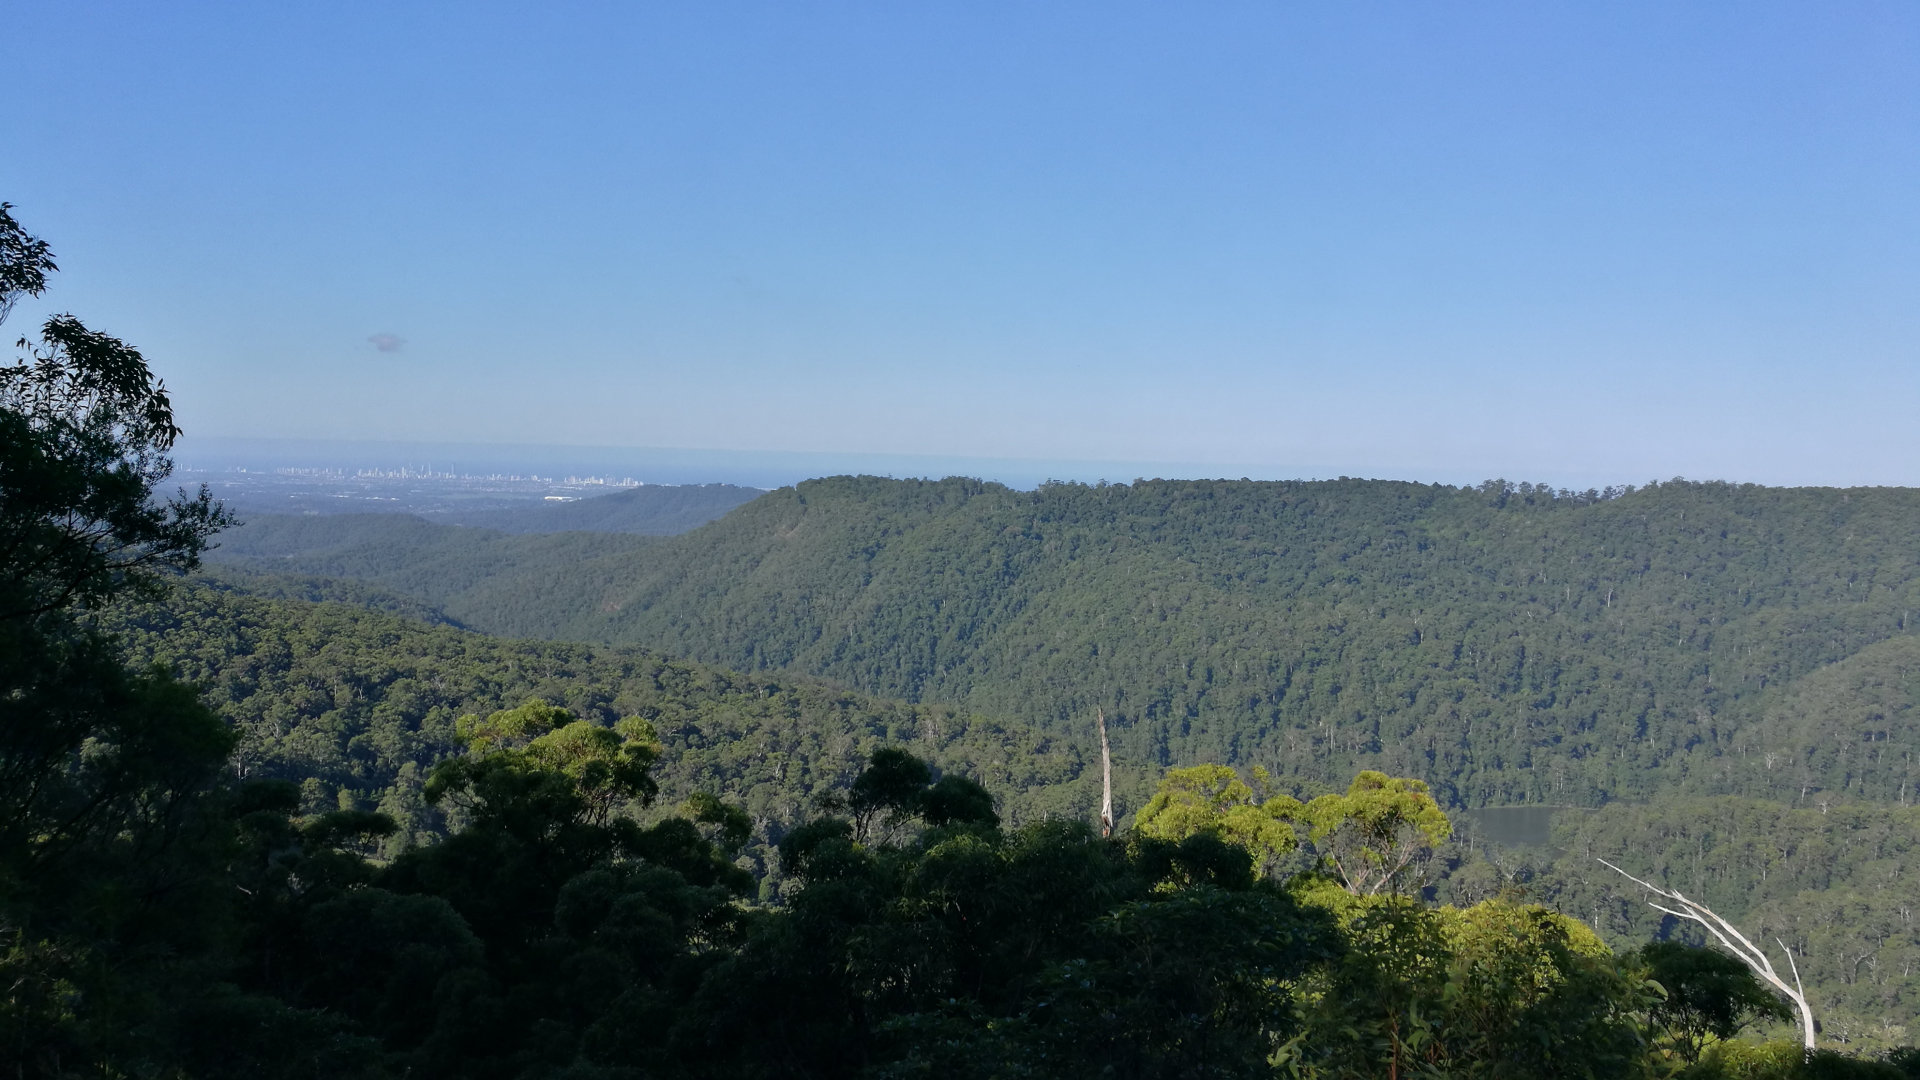 View from Wunburra Lookout down the valley and Gold Coast buildings on the coast in the distance. Wunburra Lookout is the first lookout entering into the Springbrook Mountain area